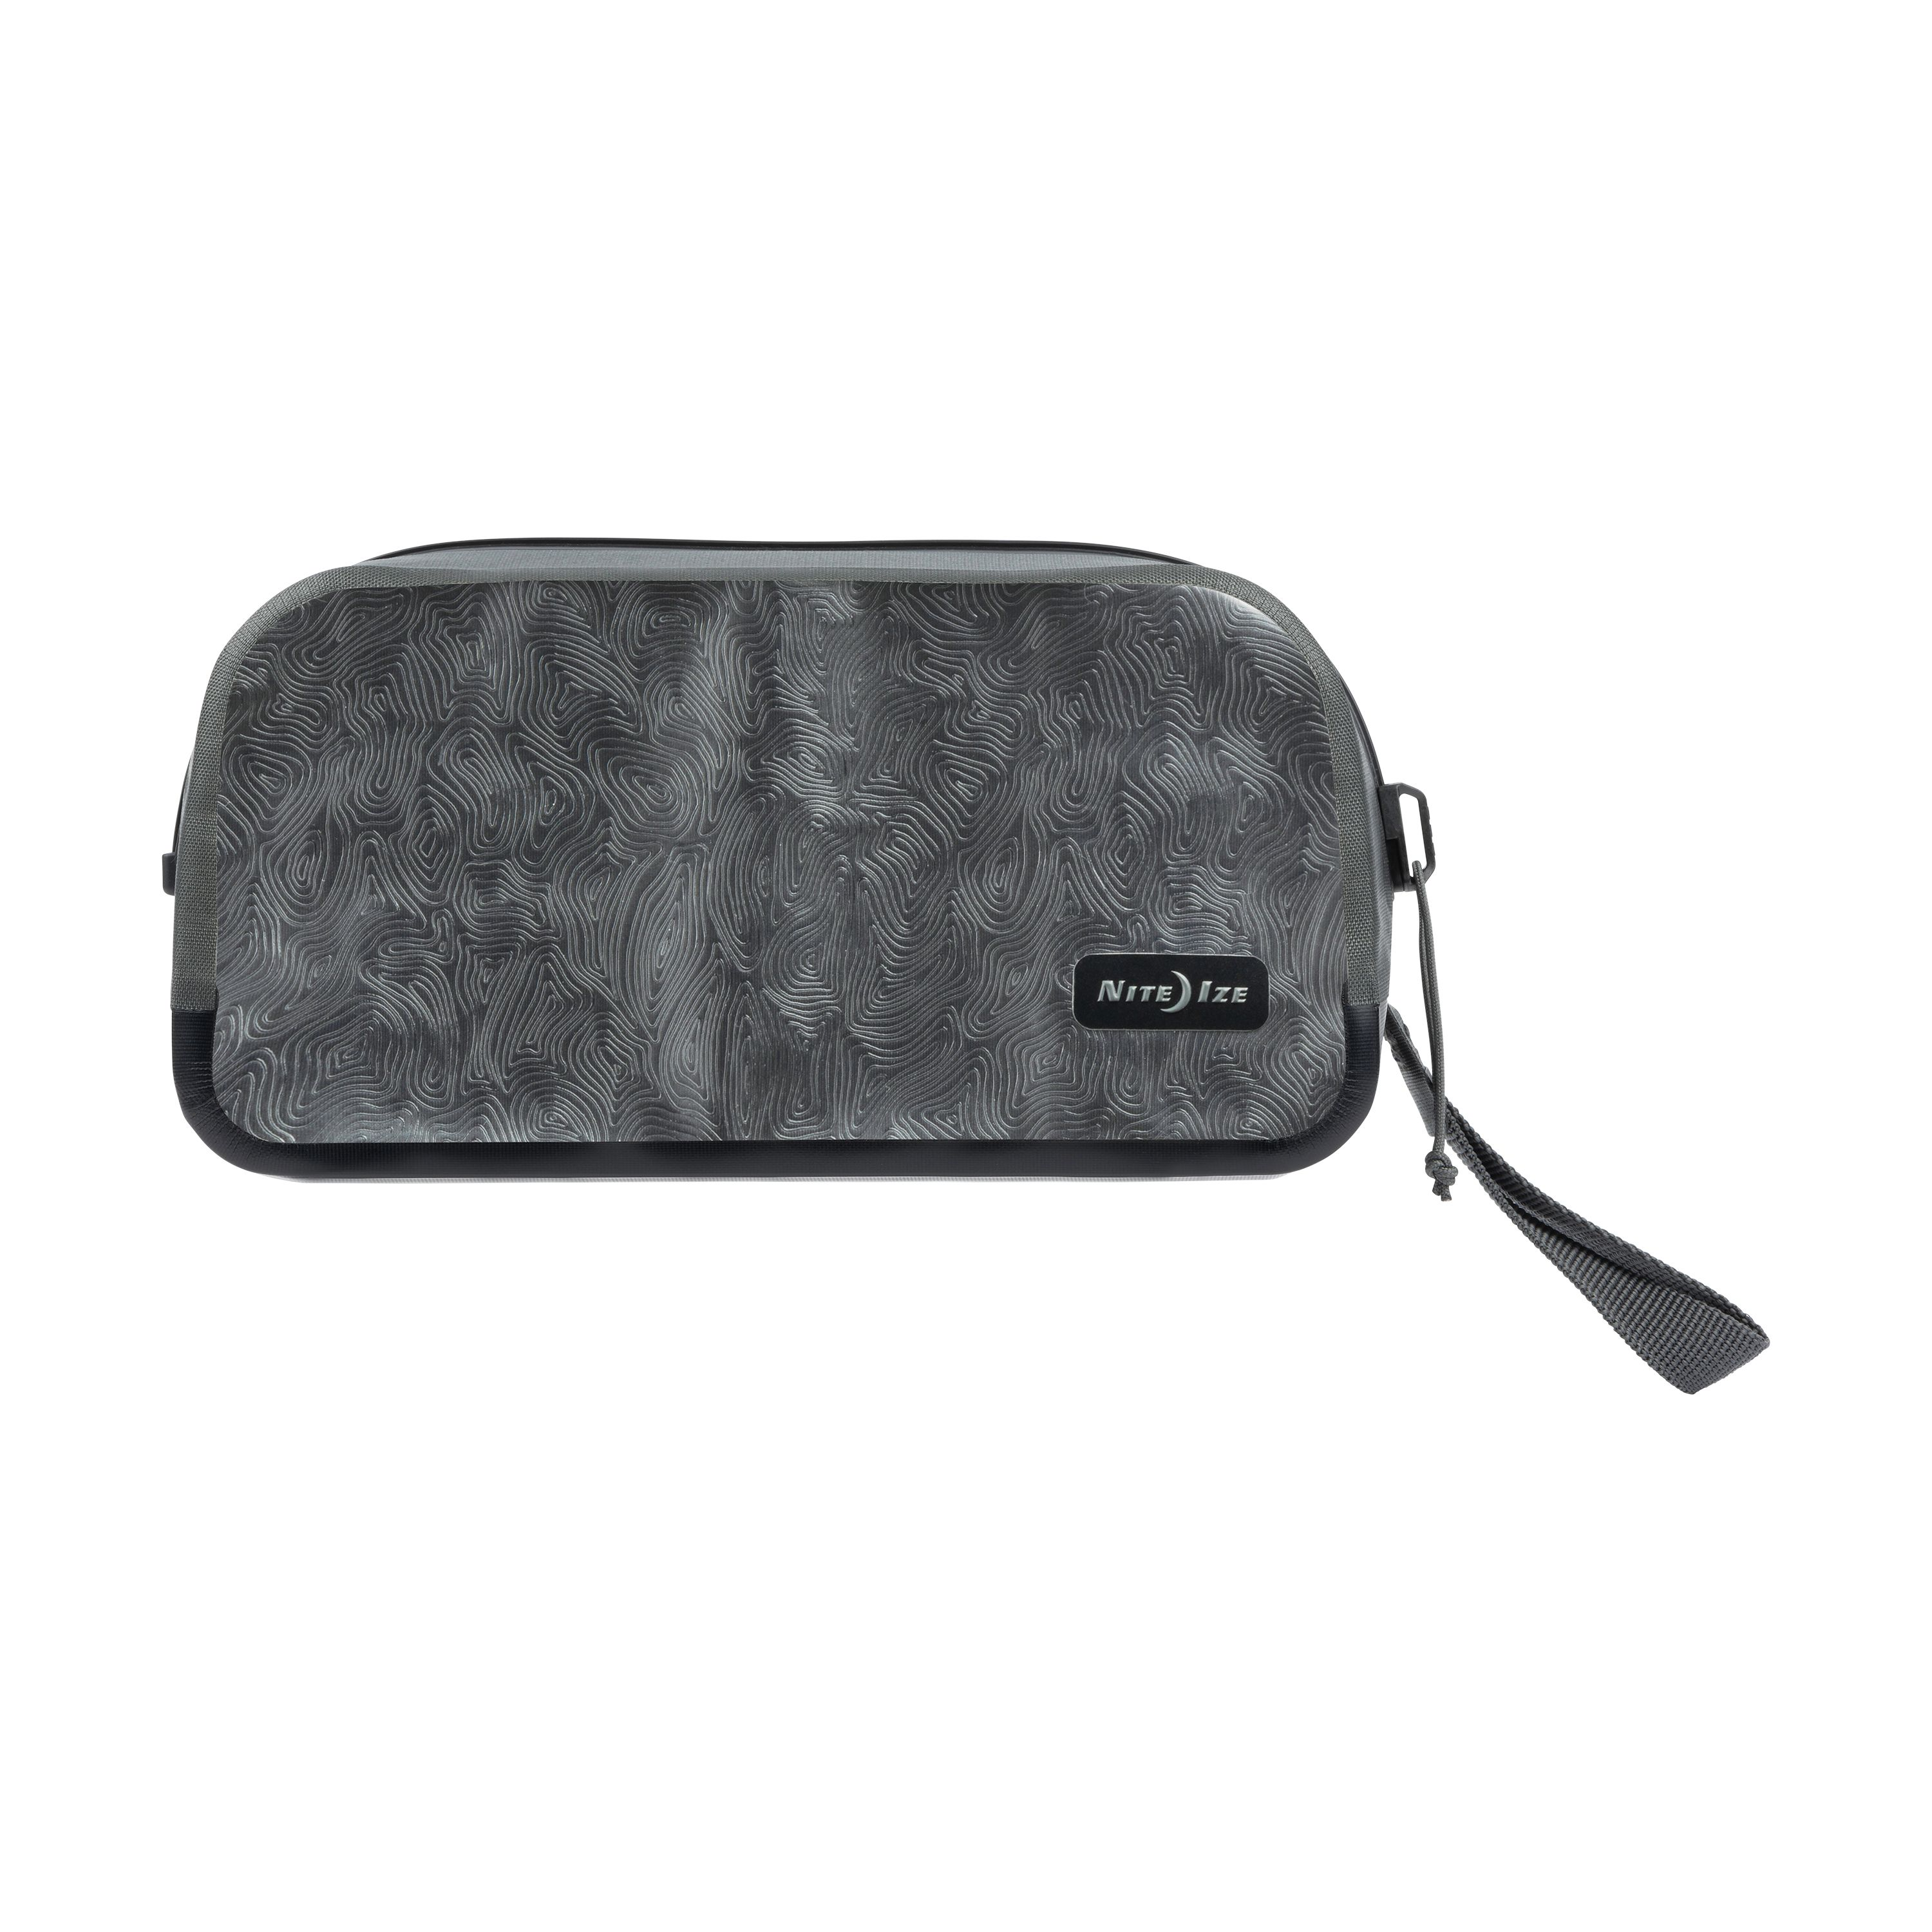 Nite Ize RunOff Waterproof Toiletry Bag with TRU Zip Technology